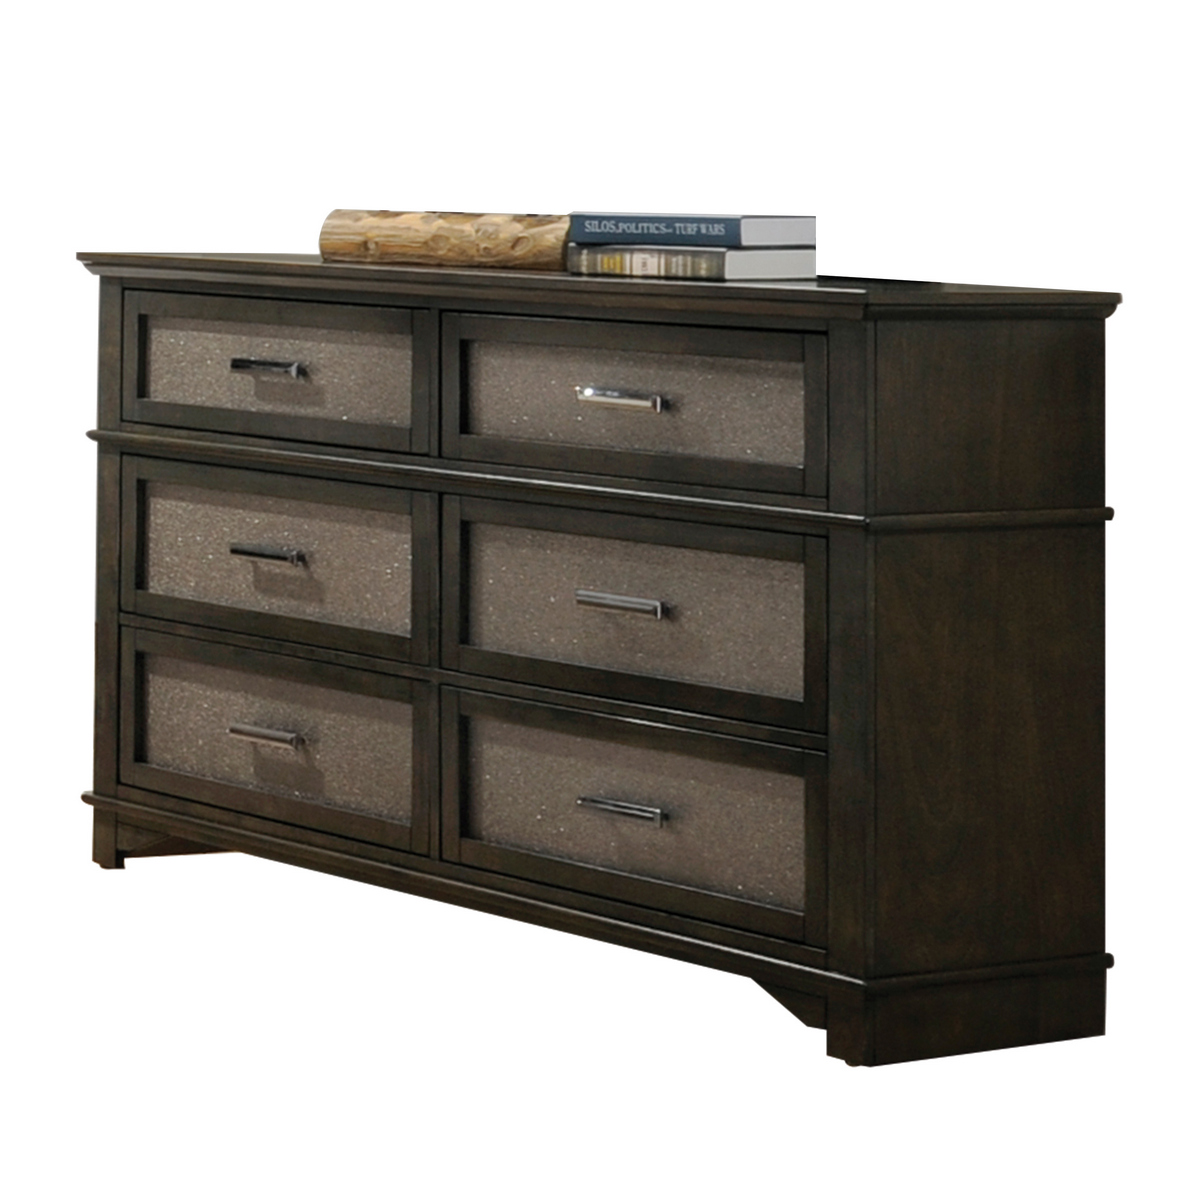 Anatole Dresser in Dark Walnut - Acme Furniture 26285